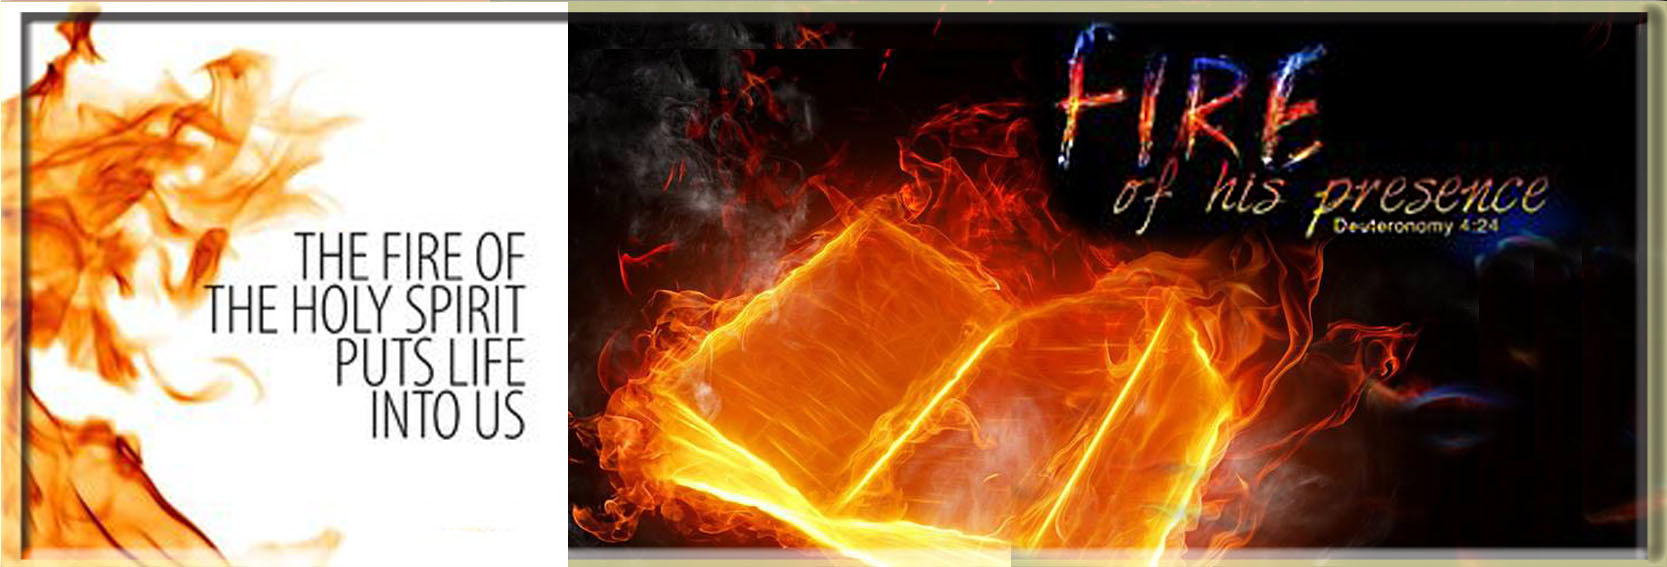 divine bible unviersity fire bible